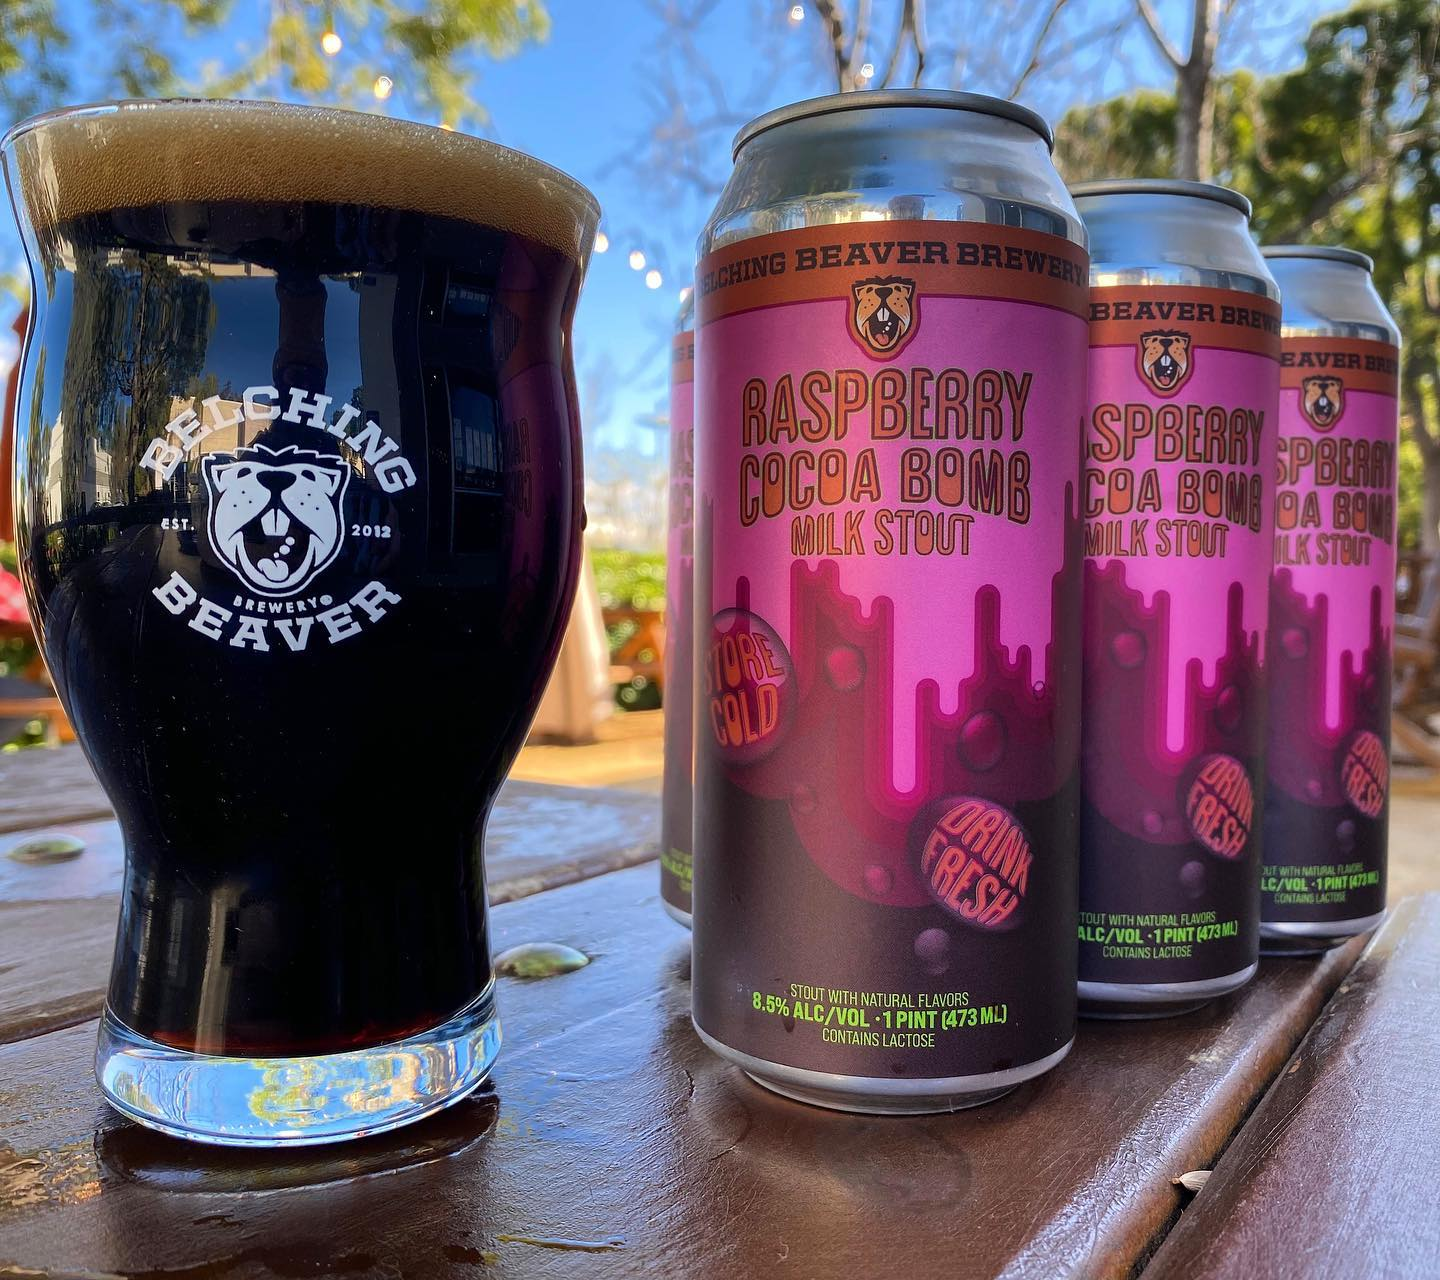 Raspberry Cocoa Bomb Stout 4-pack